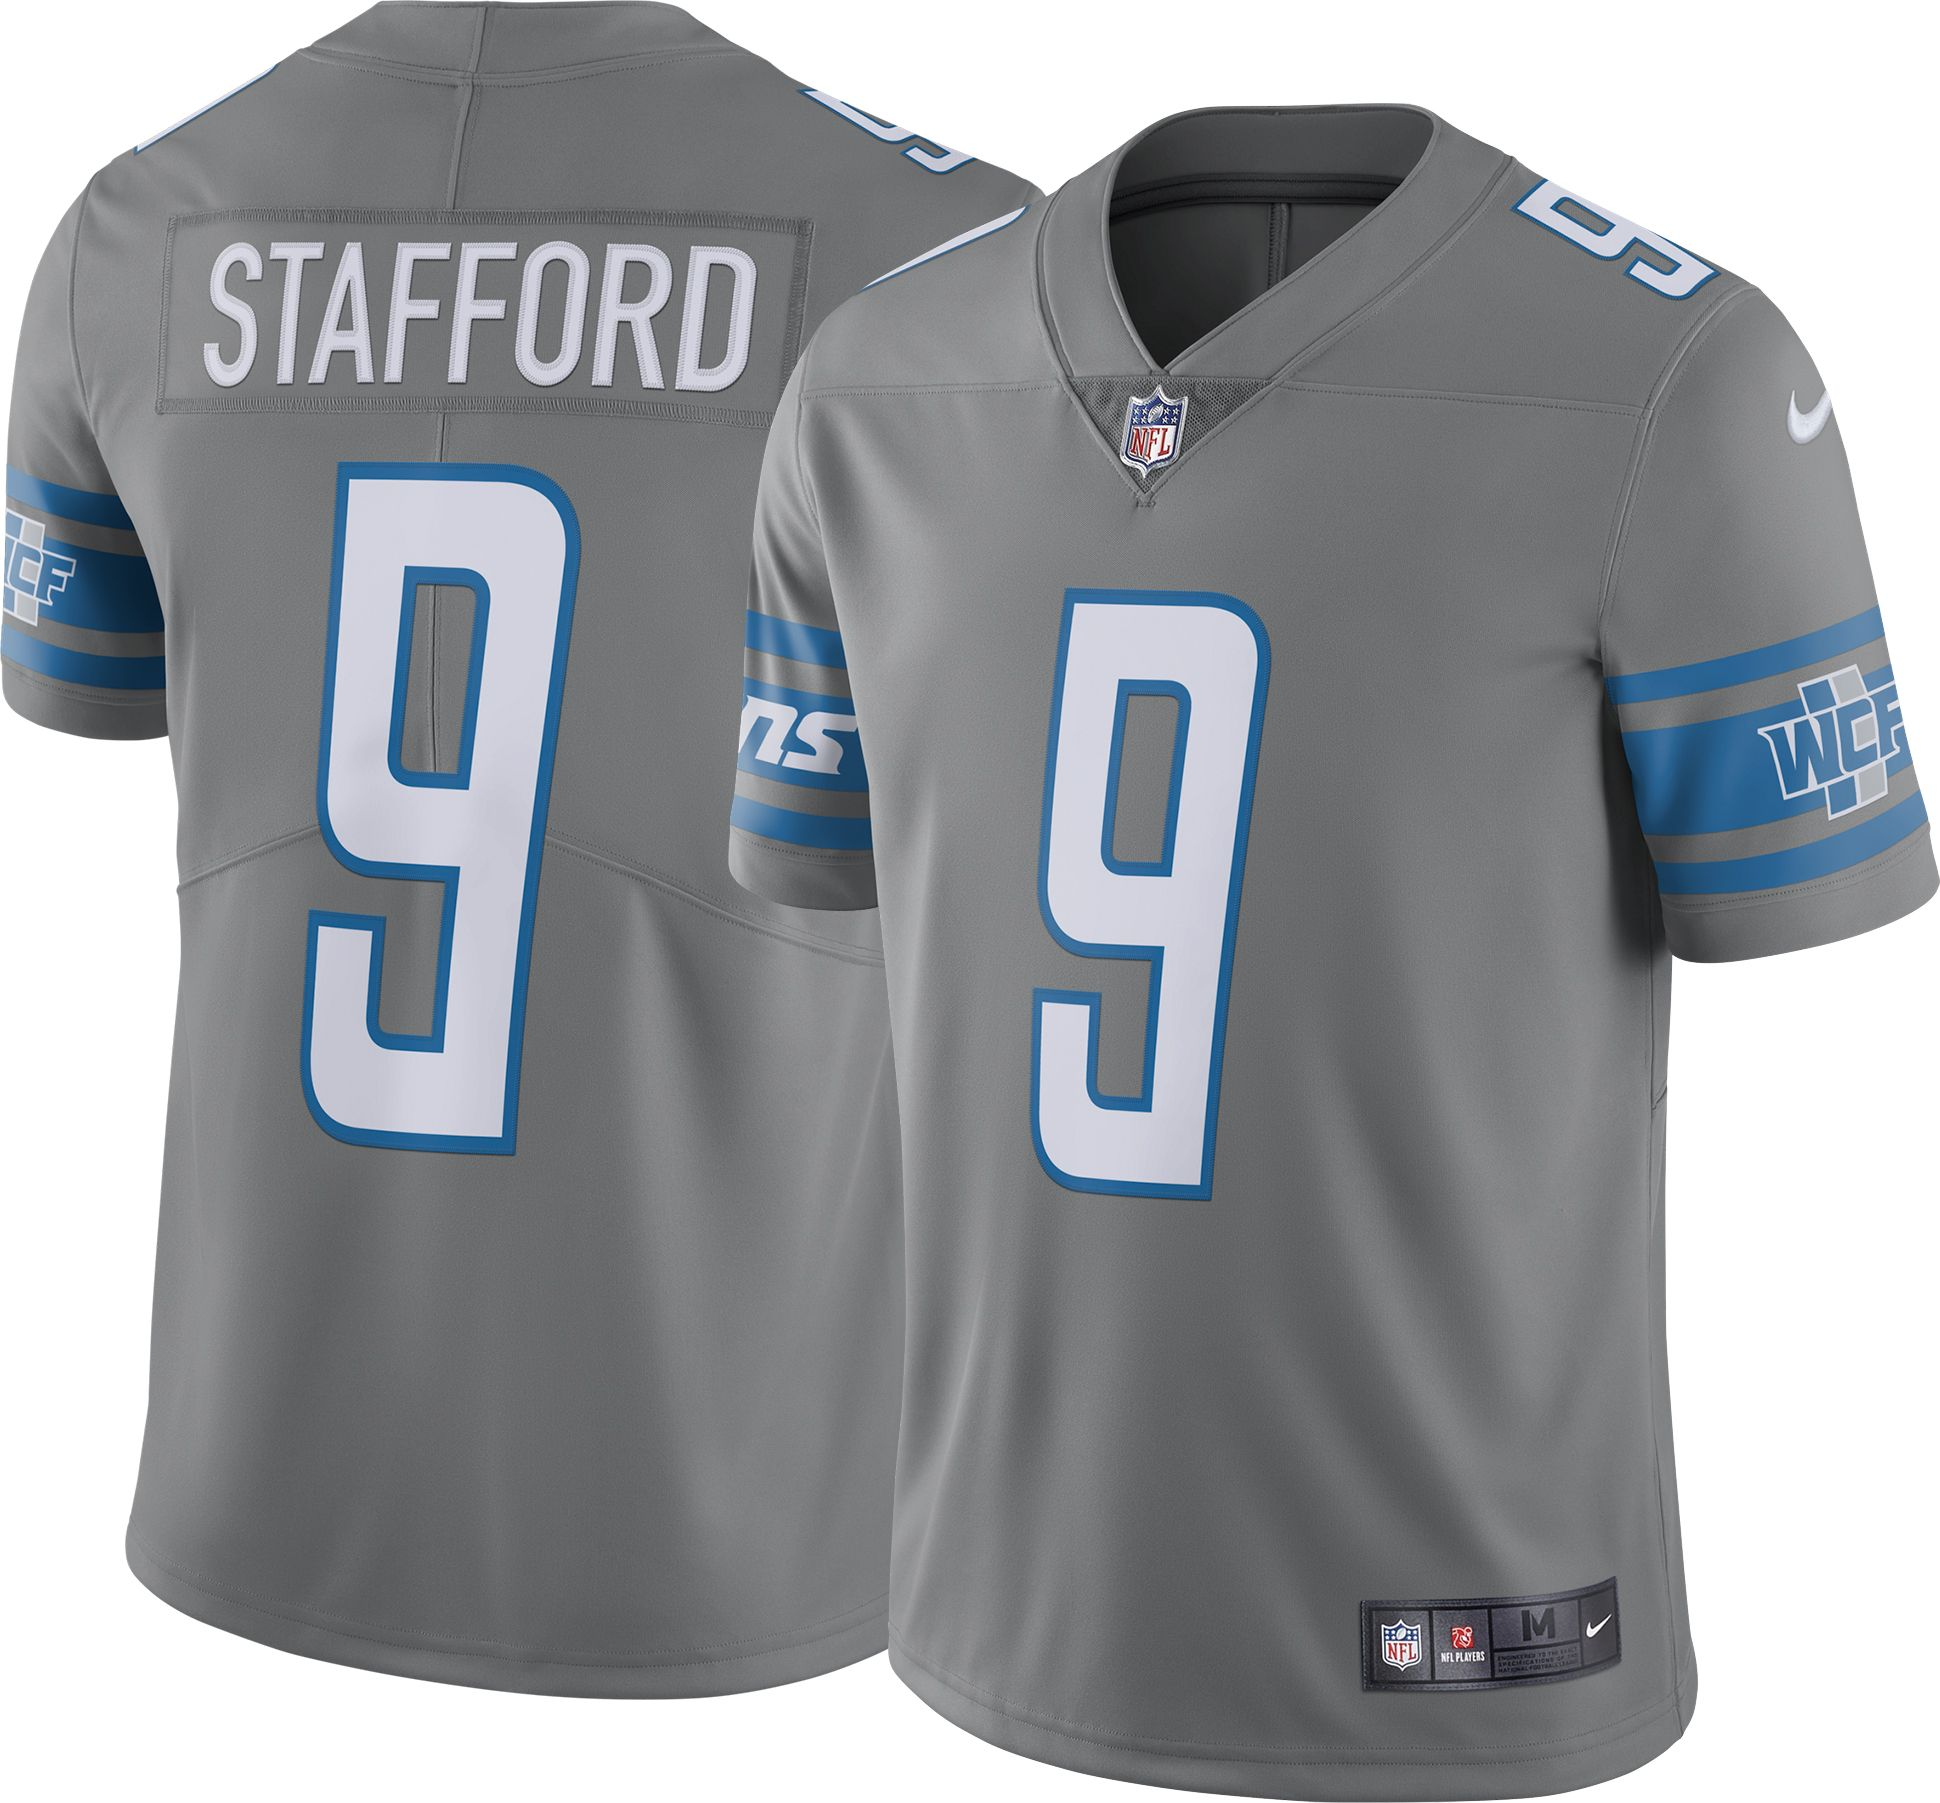 the latest 0628f a41c4 24 james conner jersey city nj